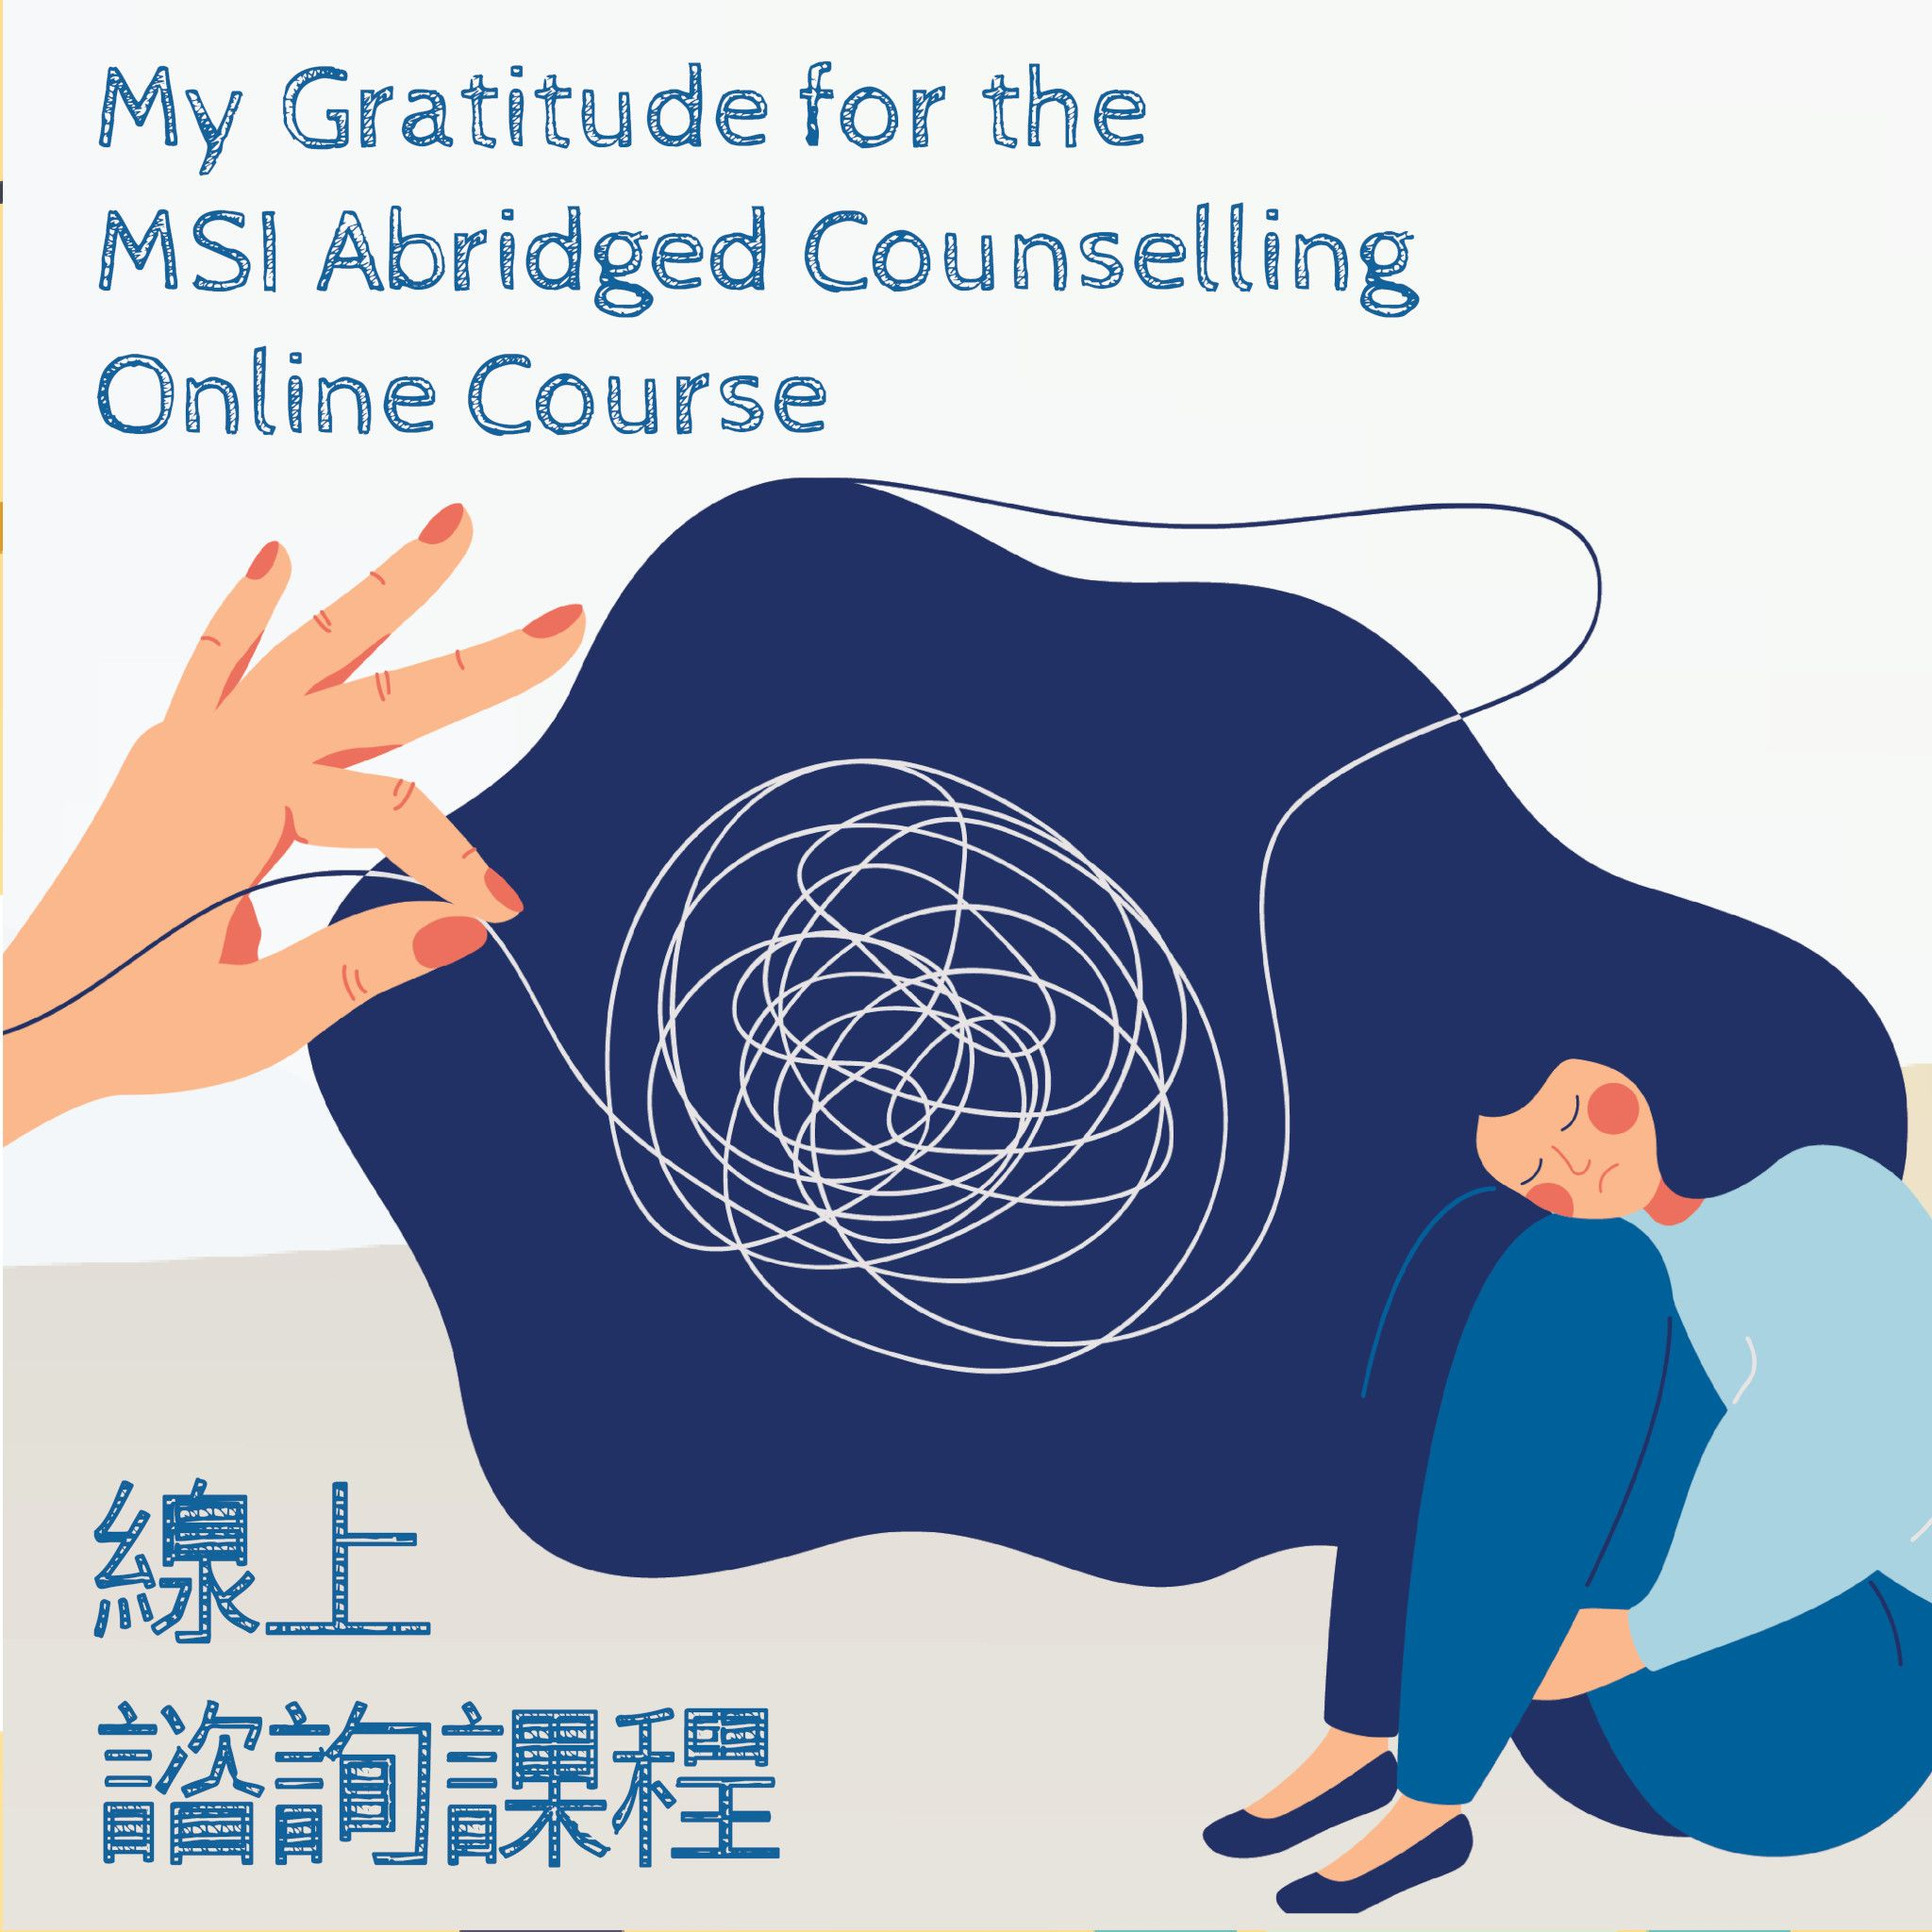 My Gratitude for the MSI Abridged Counselling Online Course